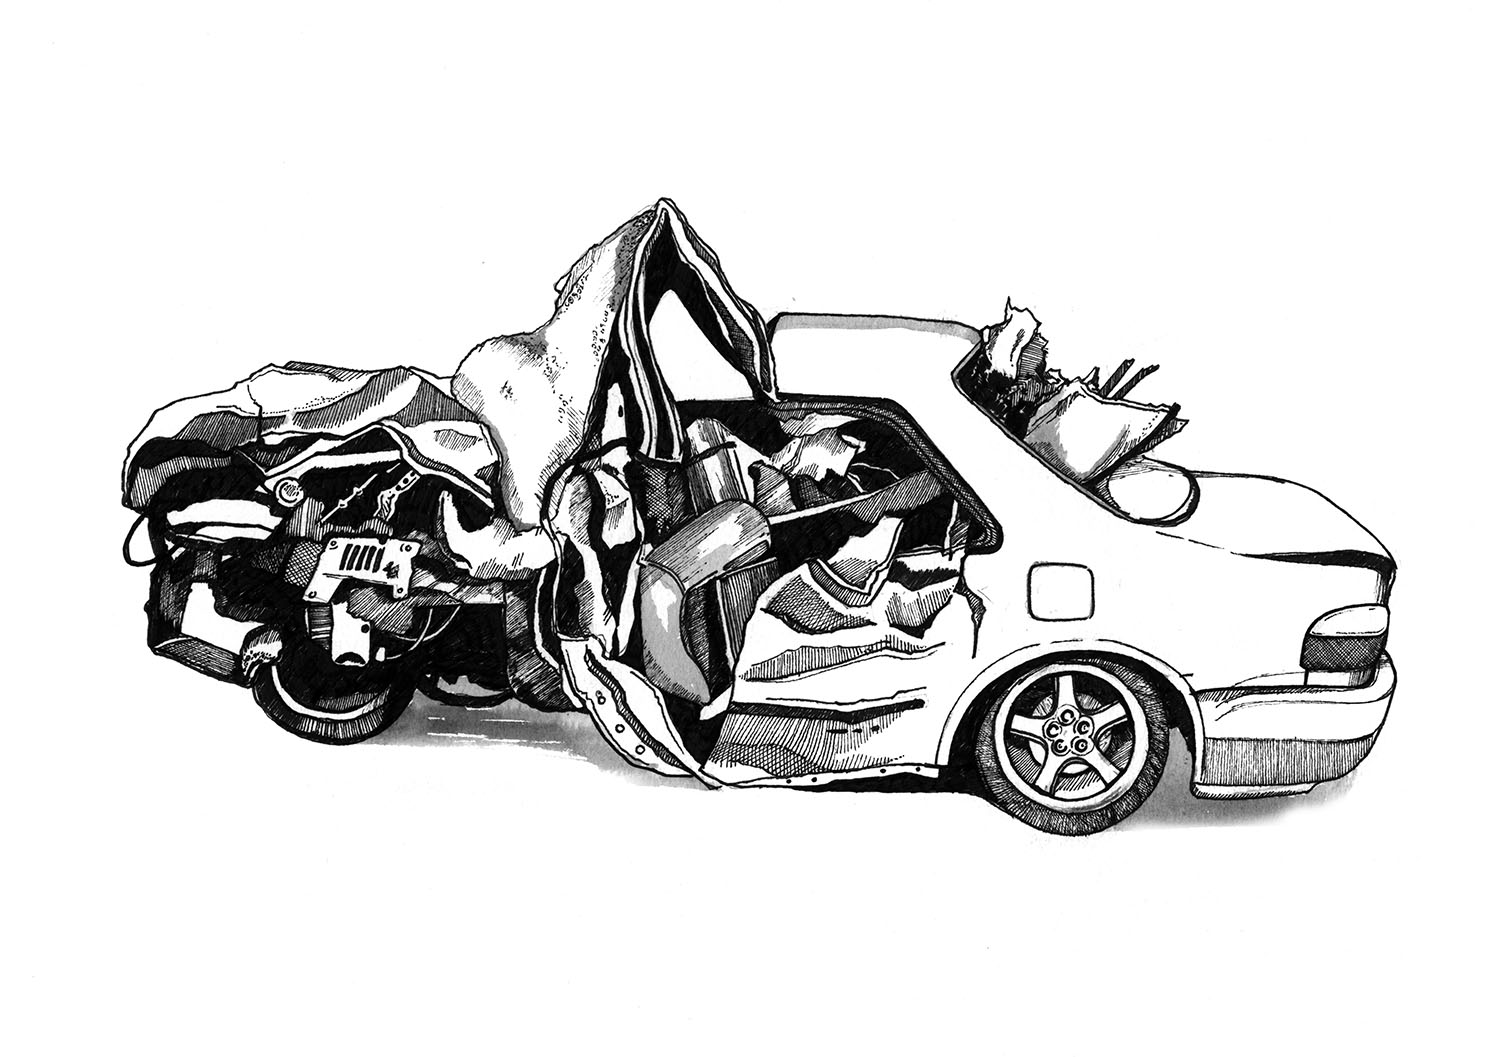 An Indian man suffered multiple injuries when a pick-up truck rammed into his car in UAE.